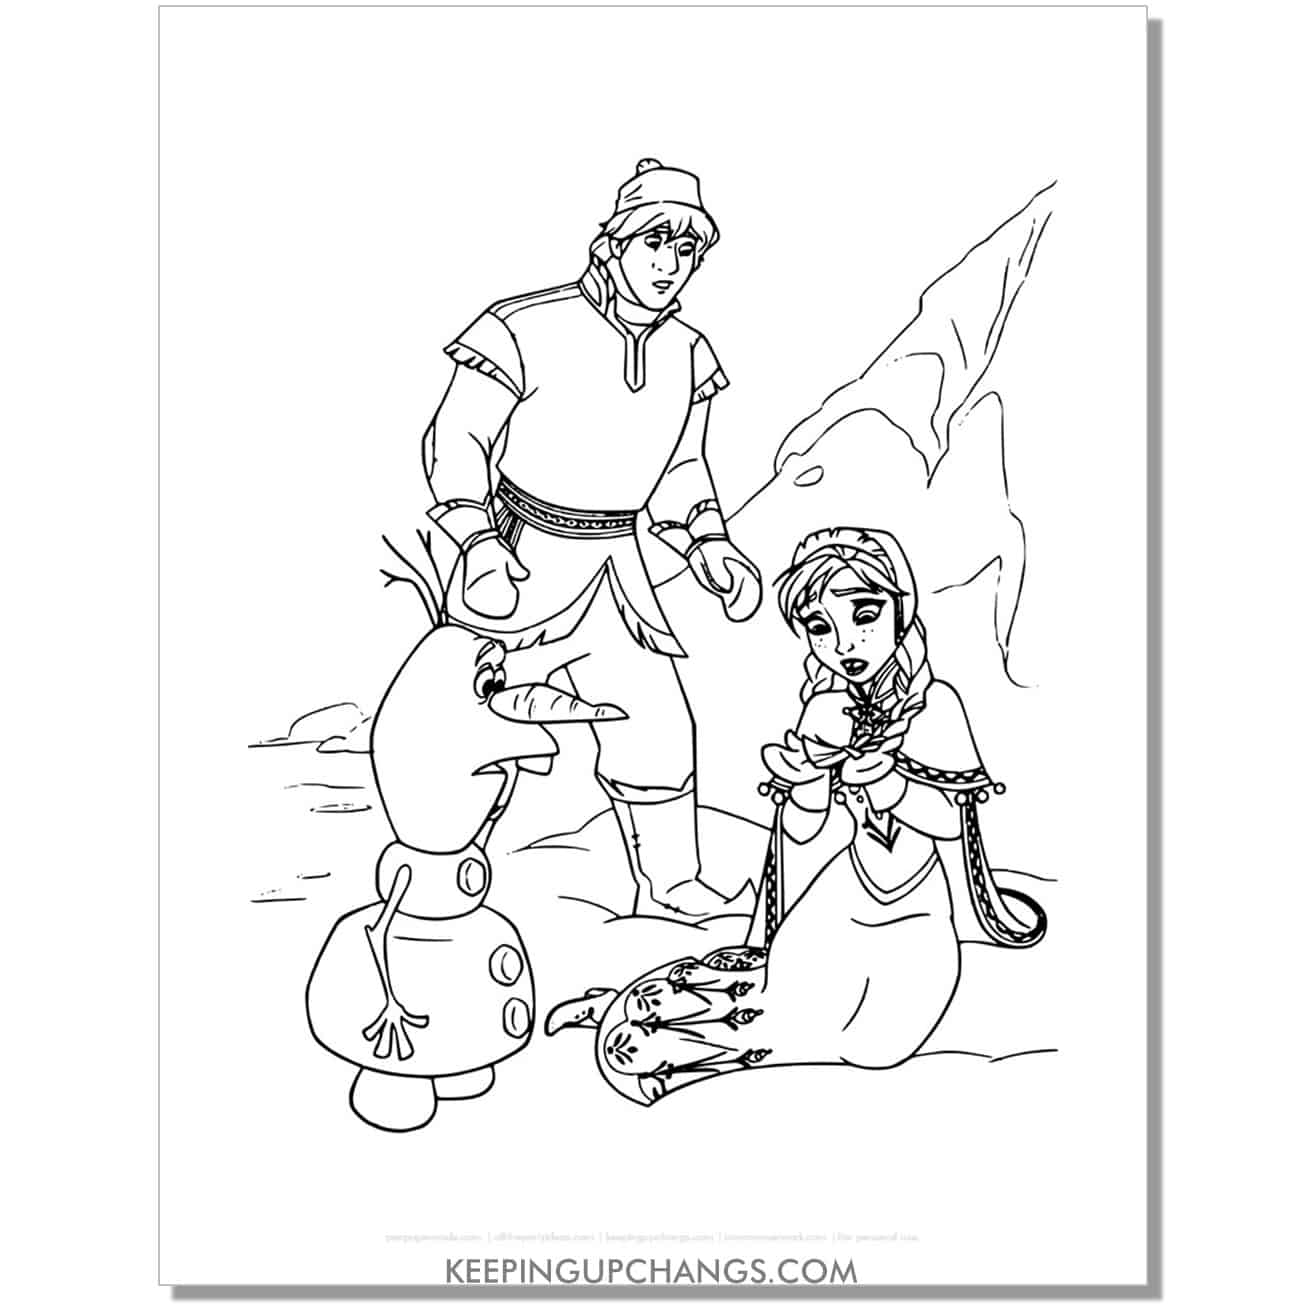 free frozen anna, kristoff, olaf find elsa coloring page.